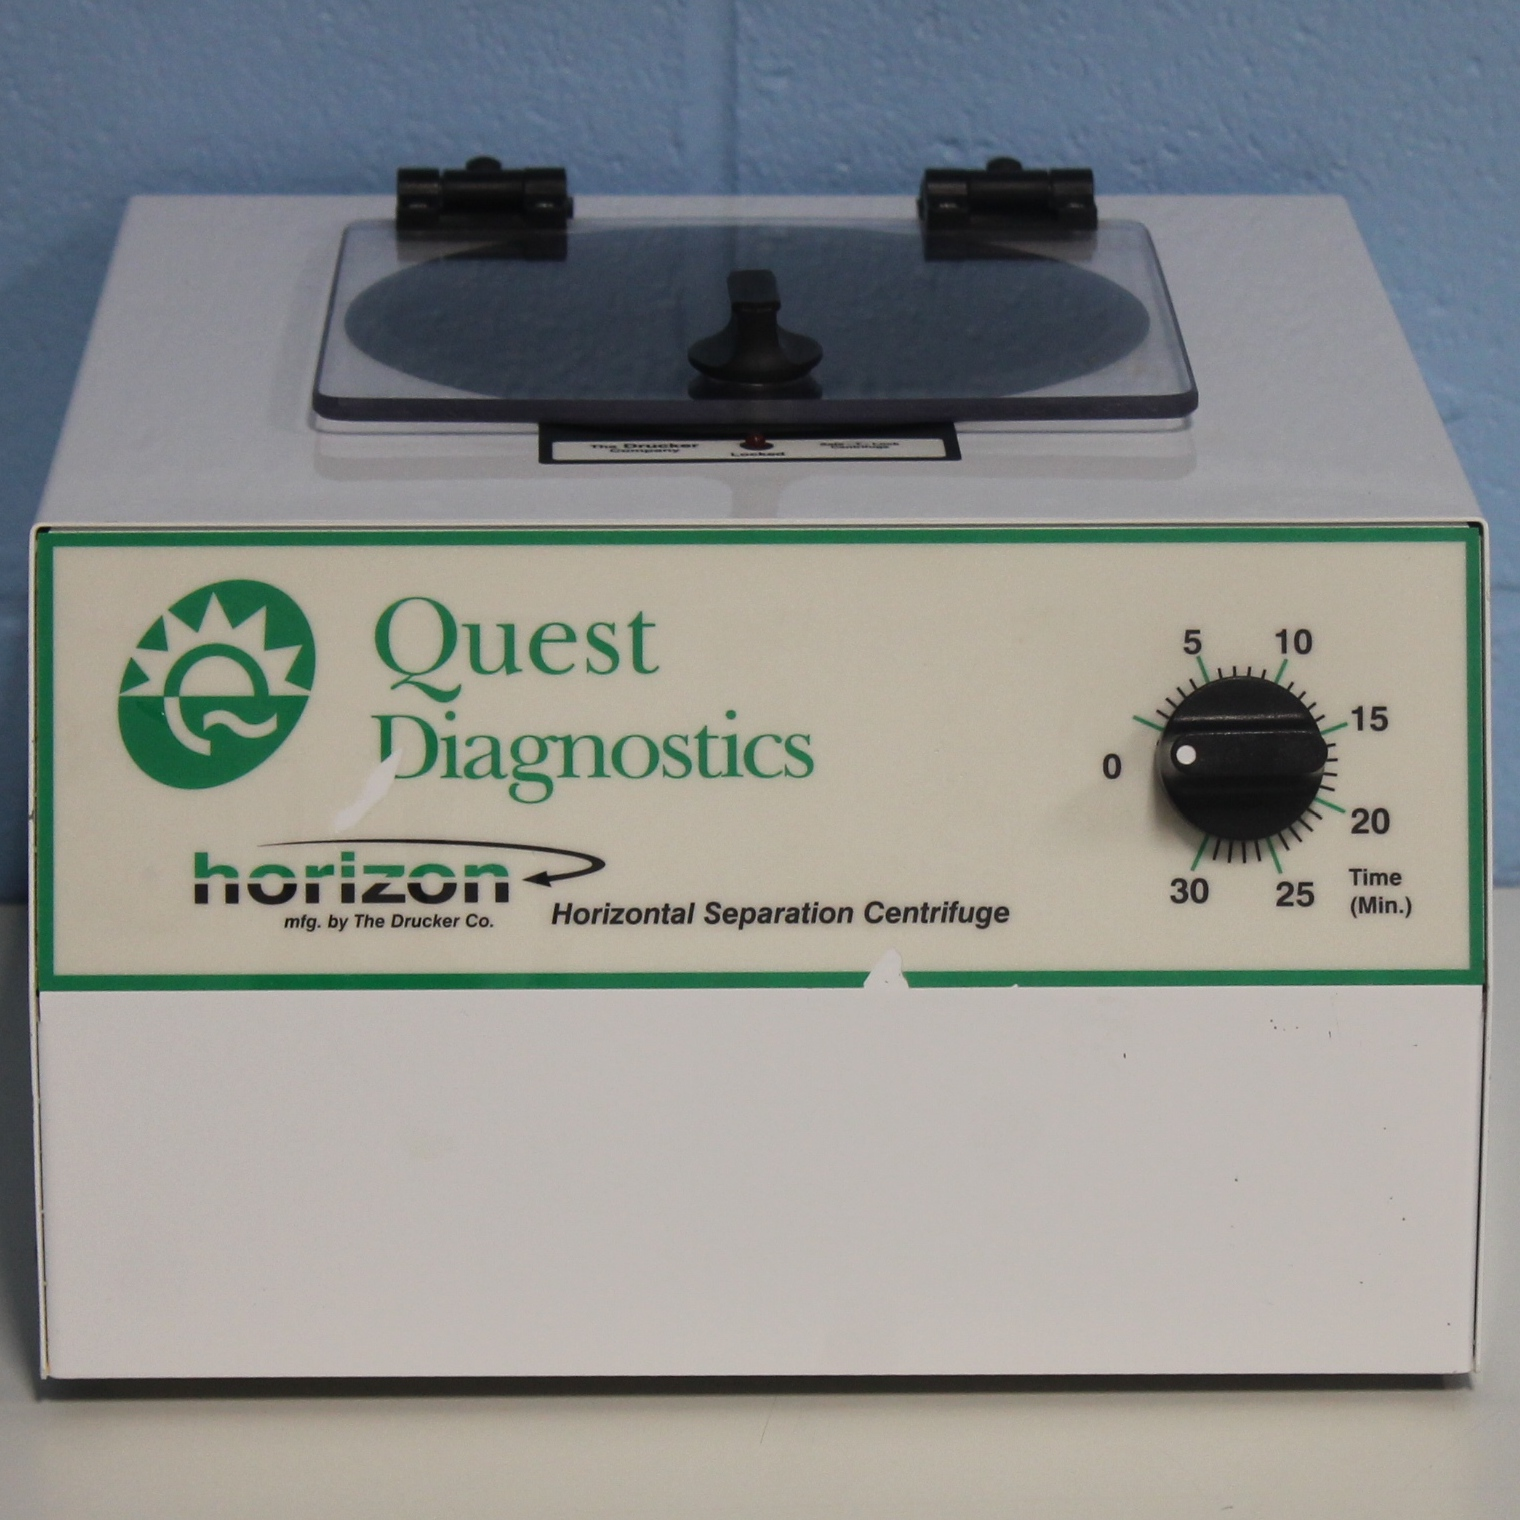 Quest Diagnostics Horizon Model 641 Quest Centrifuge Image